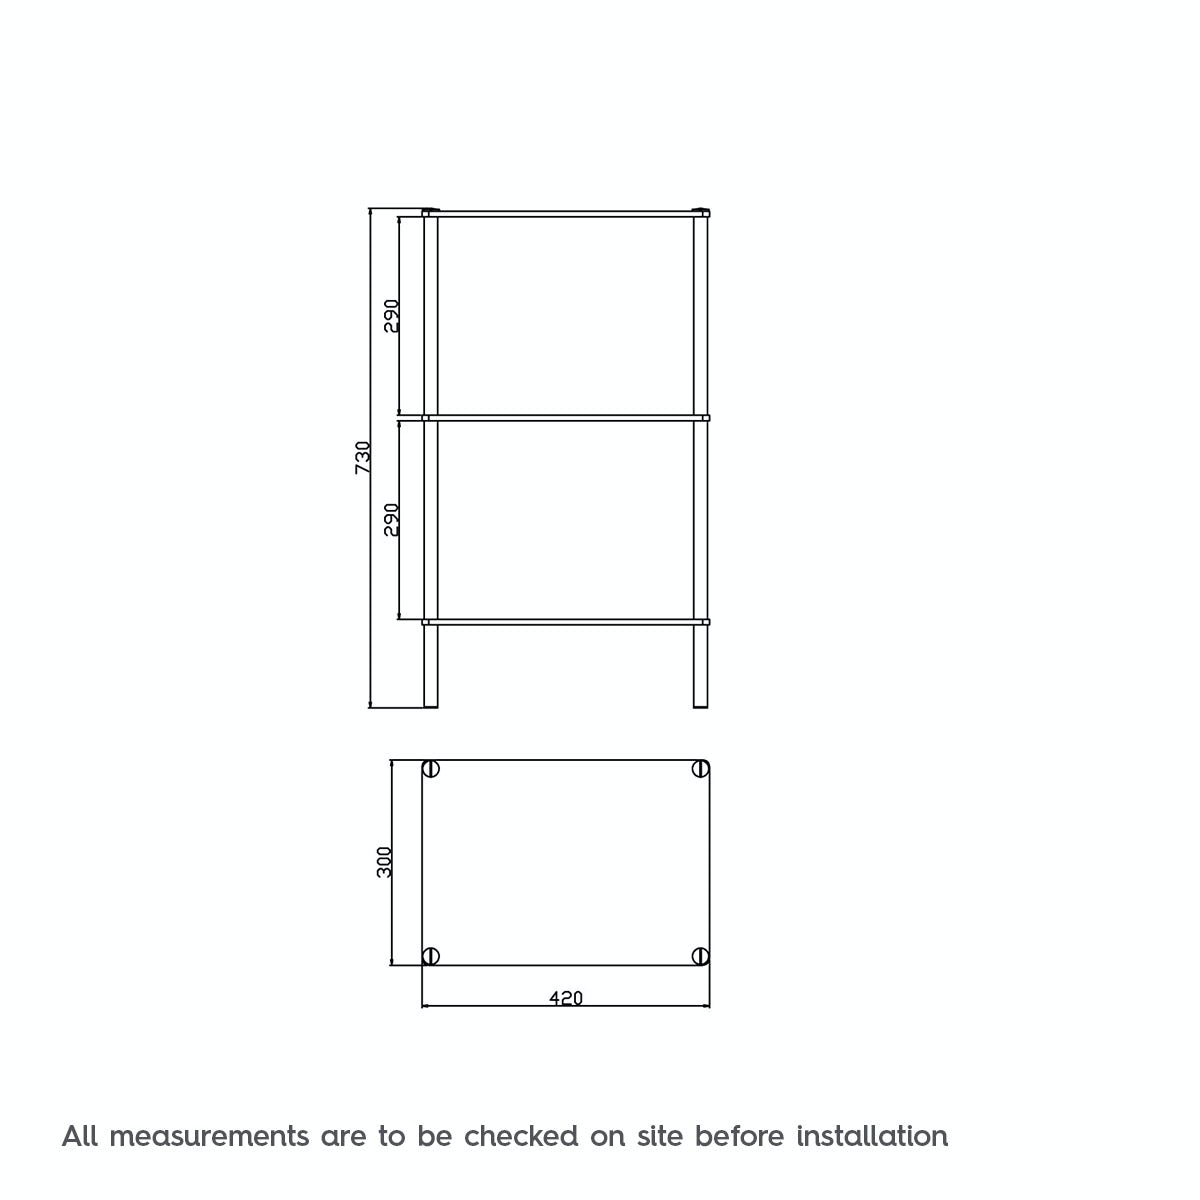 Dimensions for Orchard Options freestanding square 3 glass shelf unit